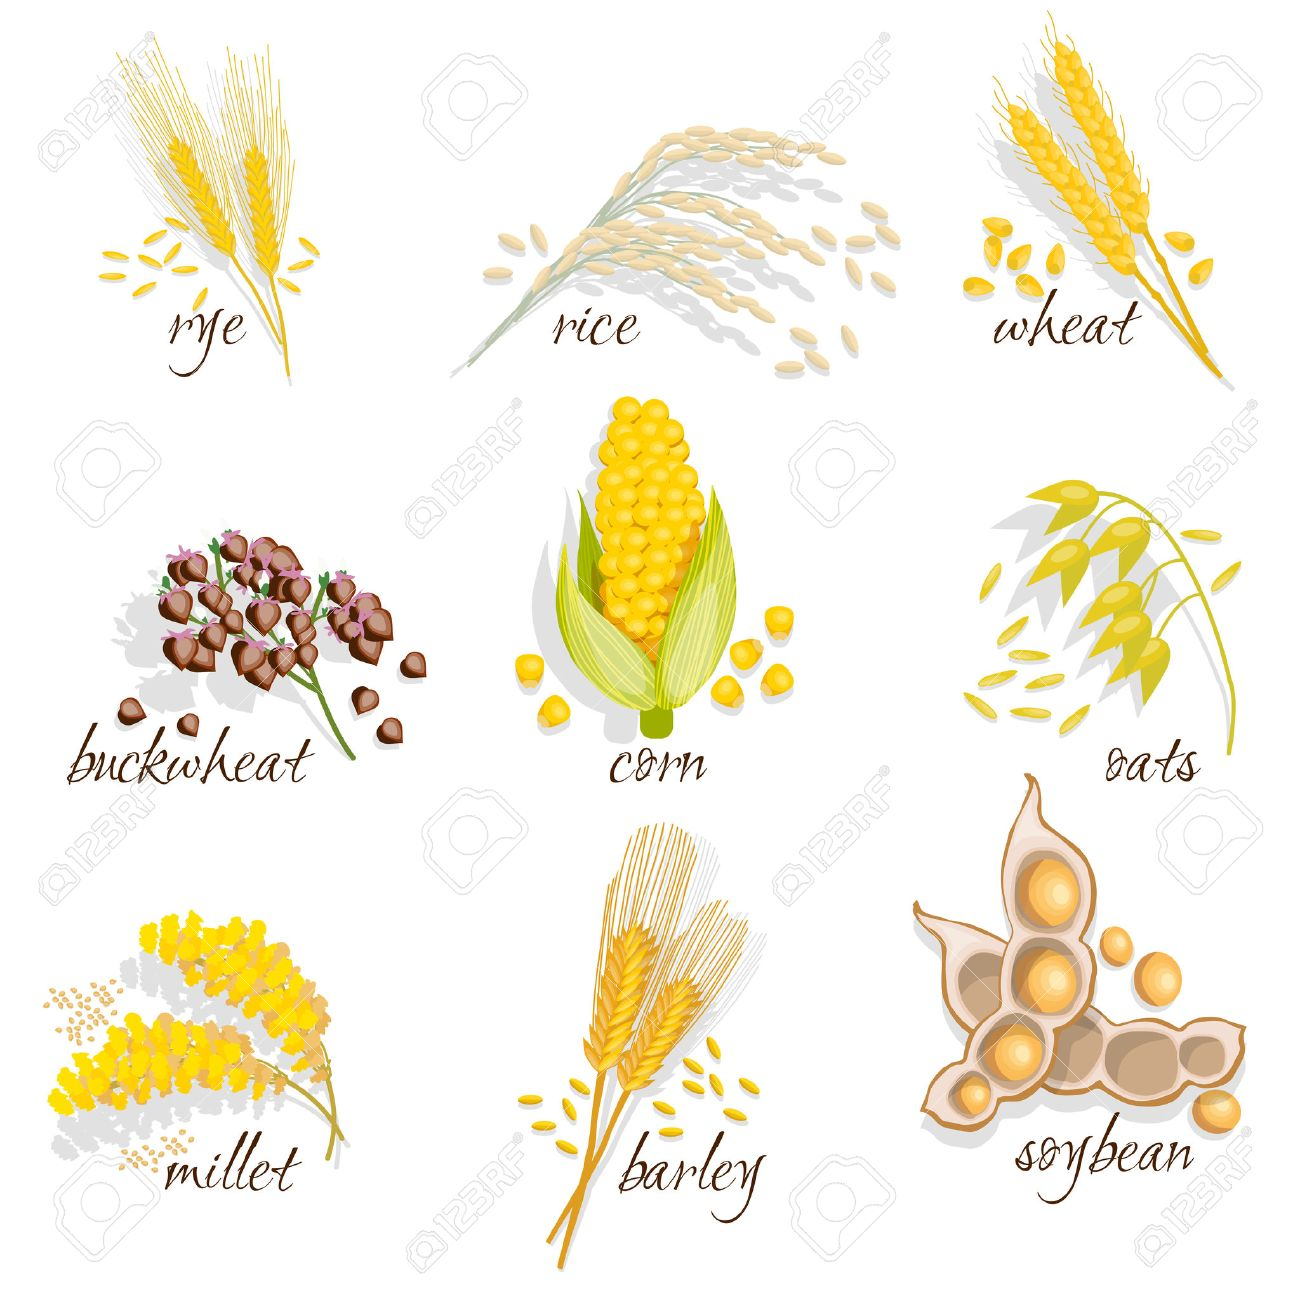 Cereals icon set with rye rice wheat corn oats millet soybean ear of grain vector illustration Stock Vector - 56988501